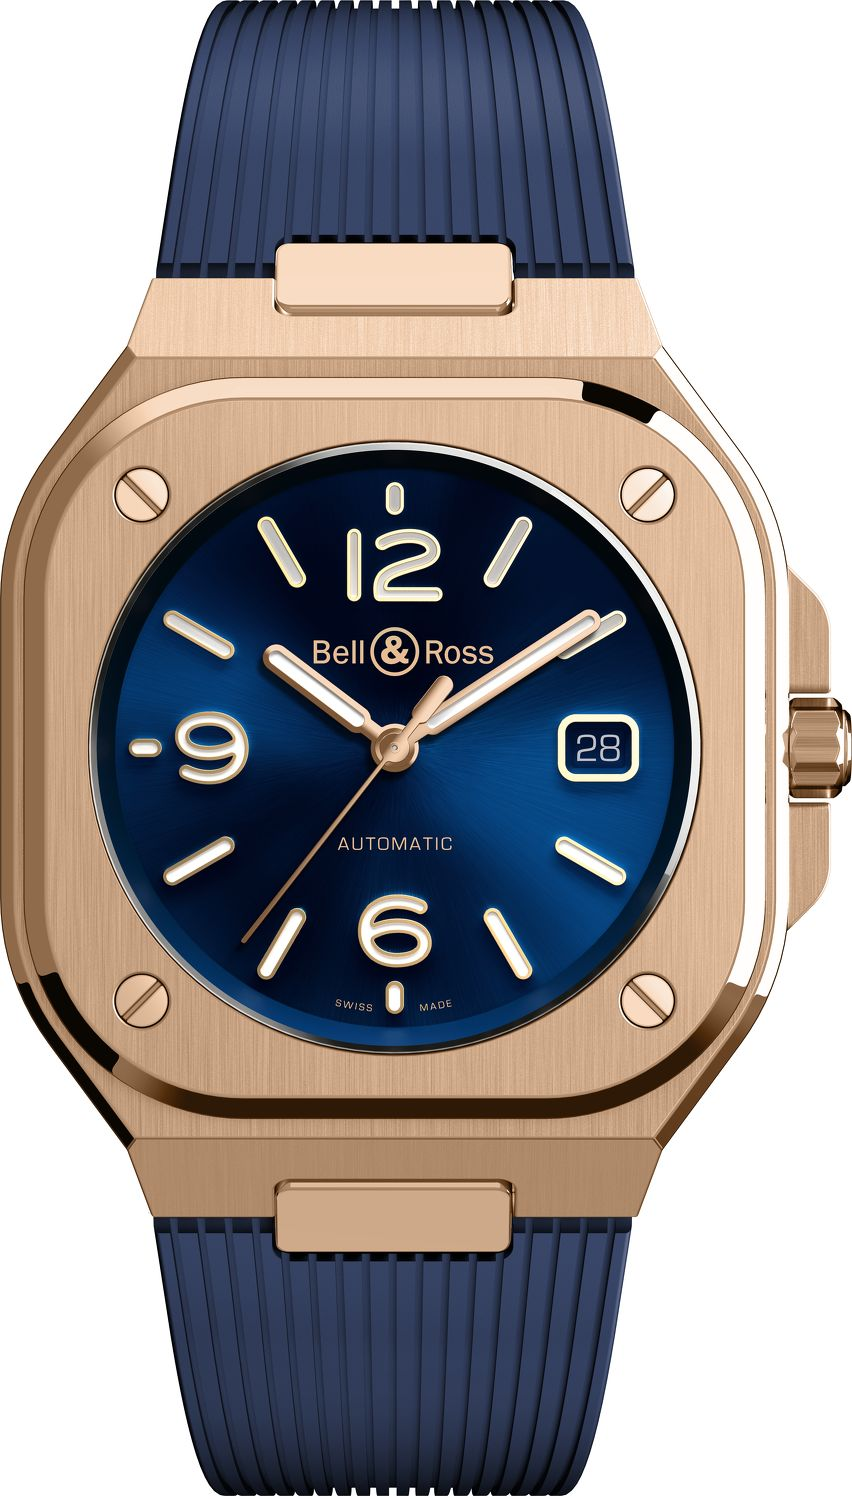 Bell & Ross - THE EDGE SINGAPORE